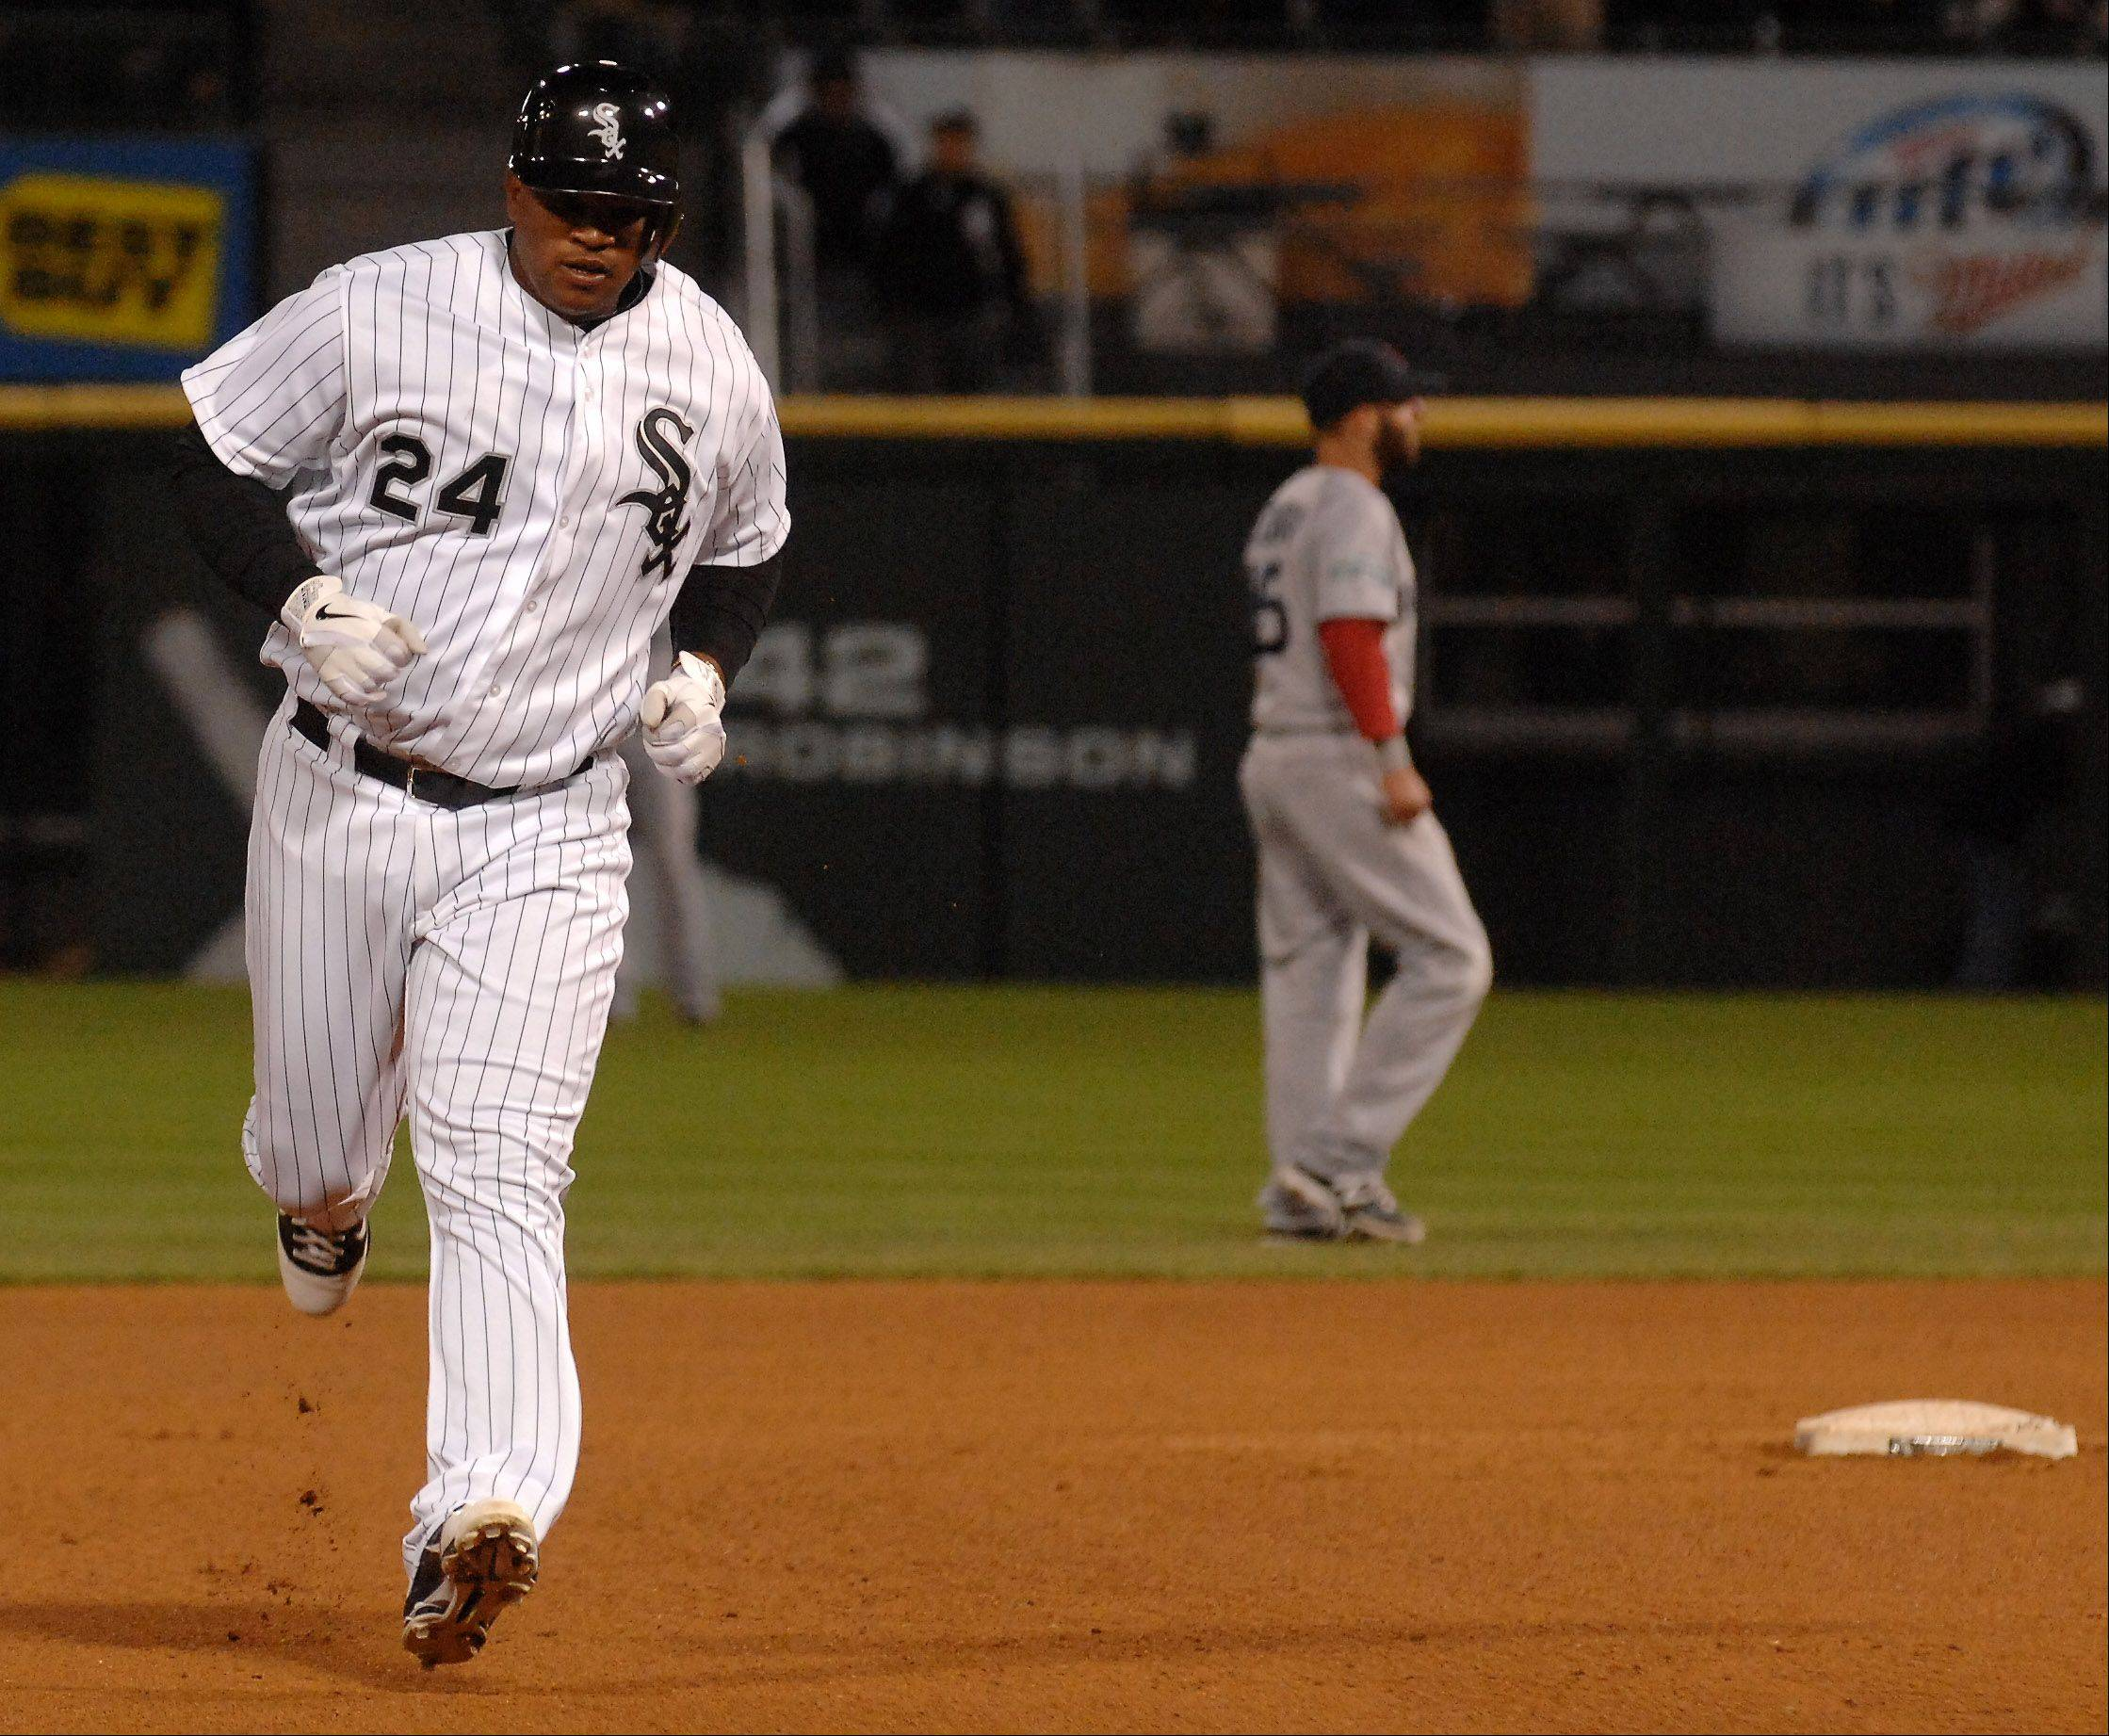 Chicago White Sox left fielder Dayan Viciedo circles the bases after a home run.